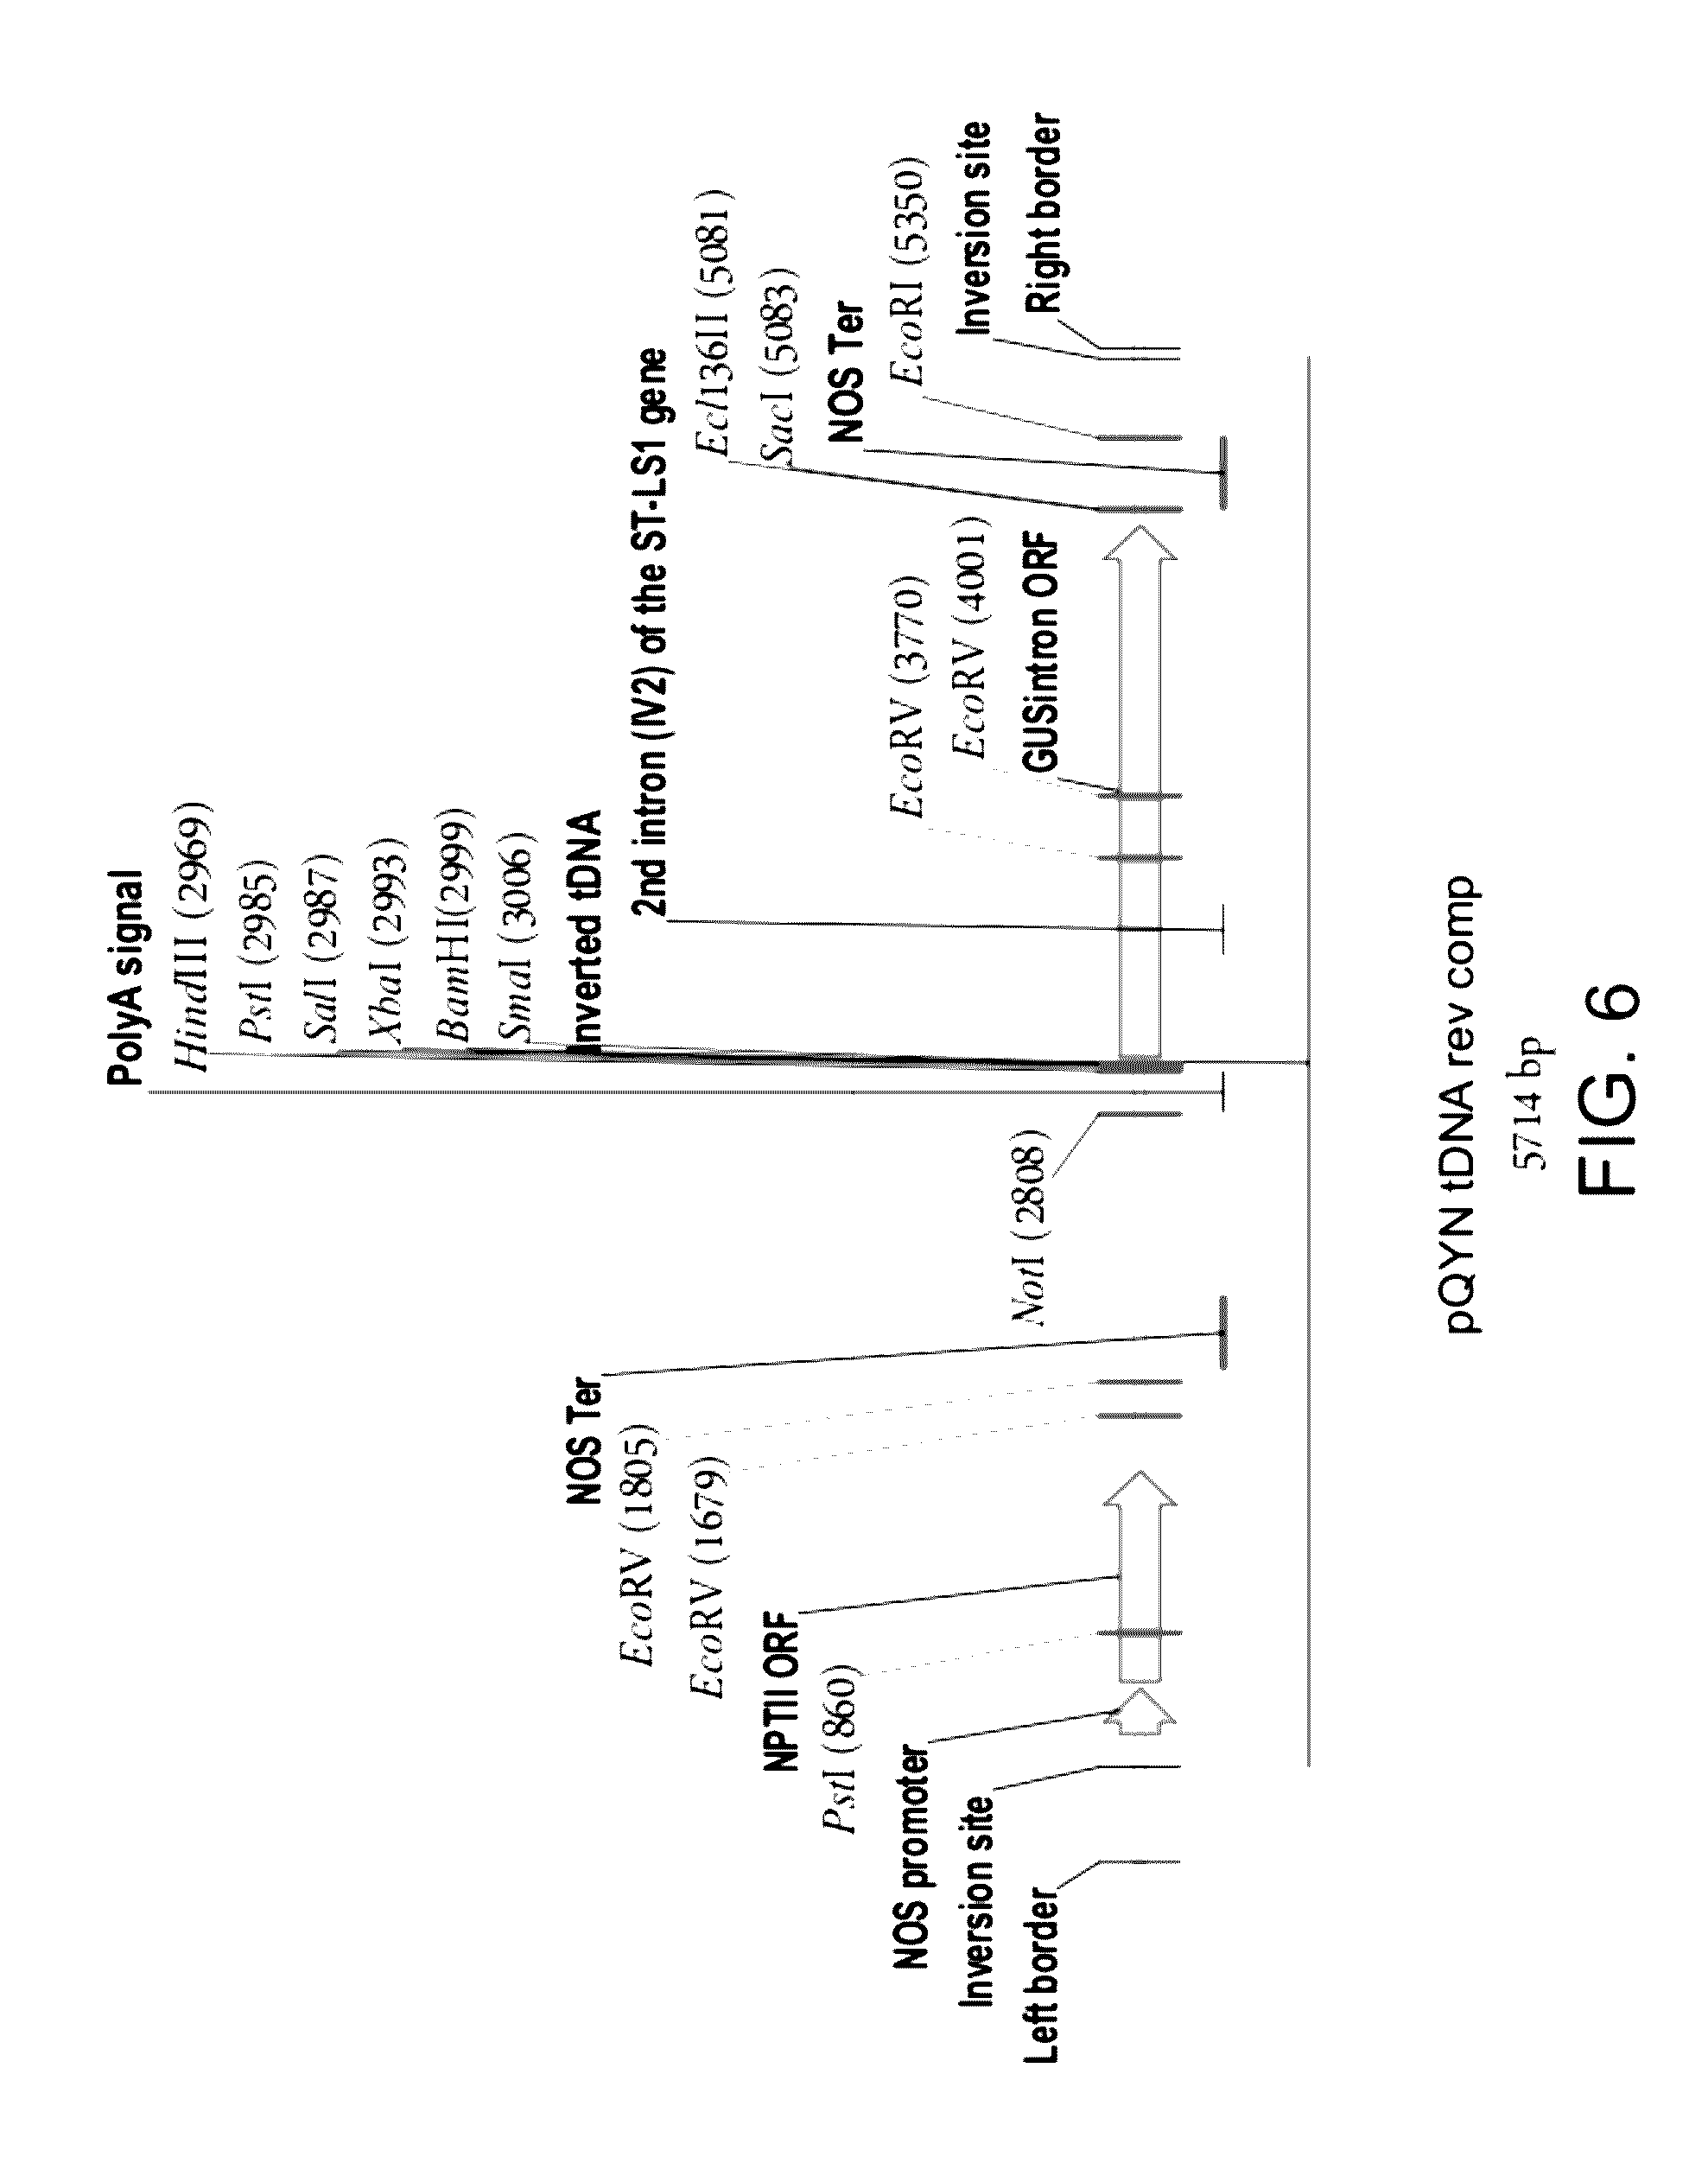 US9493785B2 - Isolated polynucleotides and polypeptides and